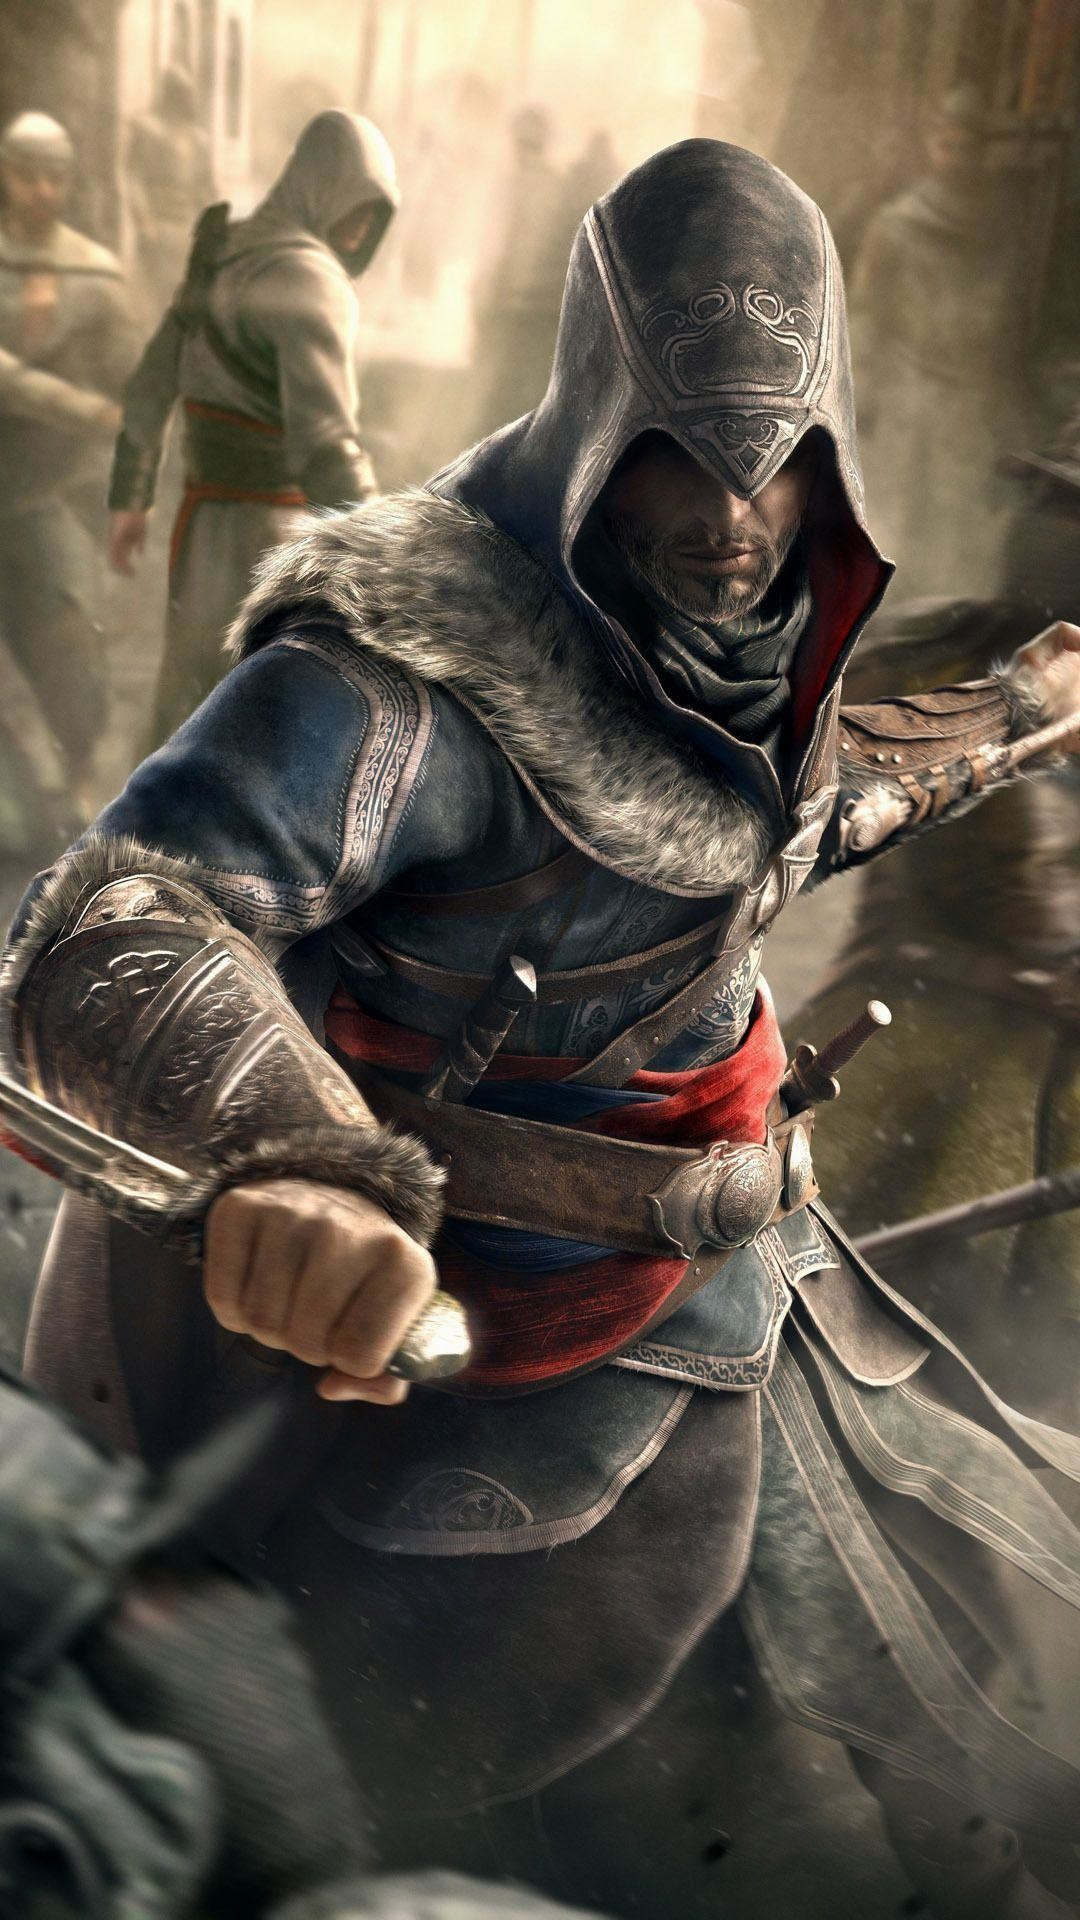 wallpaper.wiki-Download-Free-Assassins-Creed-Background-for-